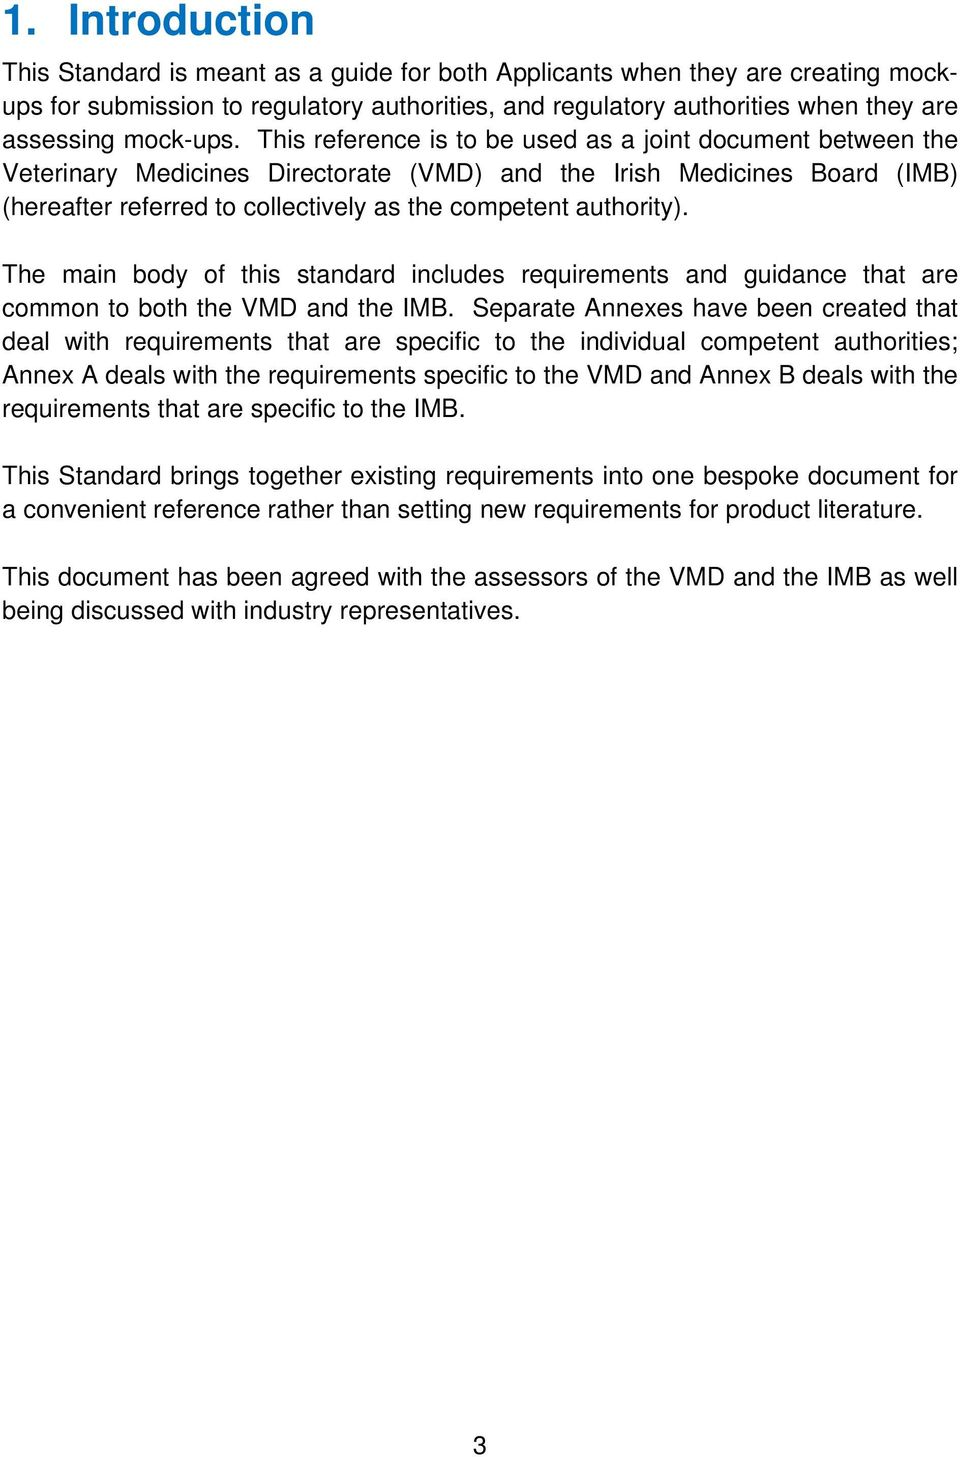 This reference is to be used as a joint document between the Veterinary Medicines Directorate (VMD) and the Irish Medicines Board (IMB) (hereafter referred to collectively as the competent authority).